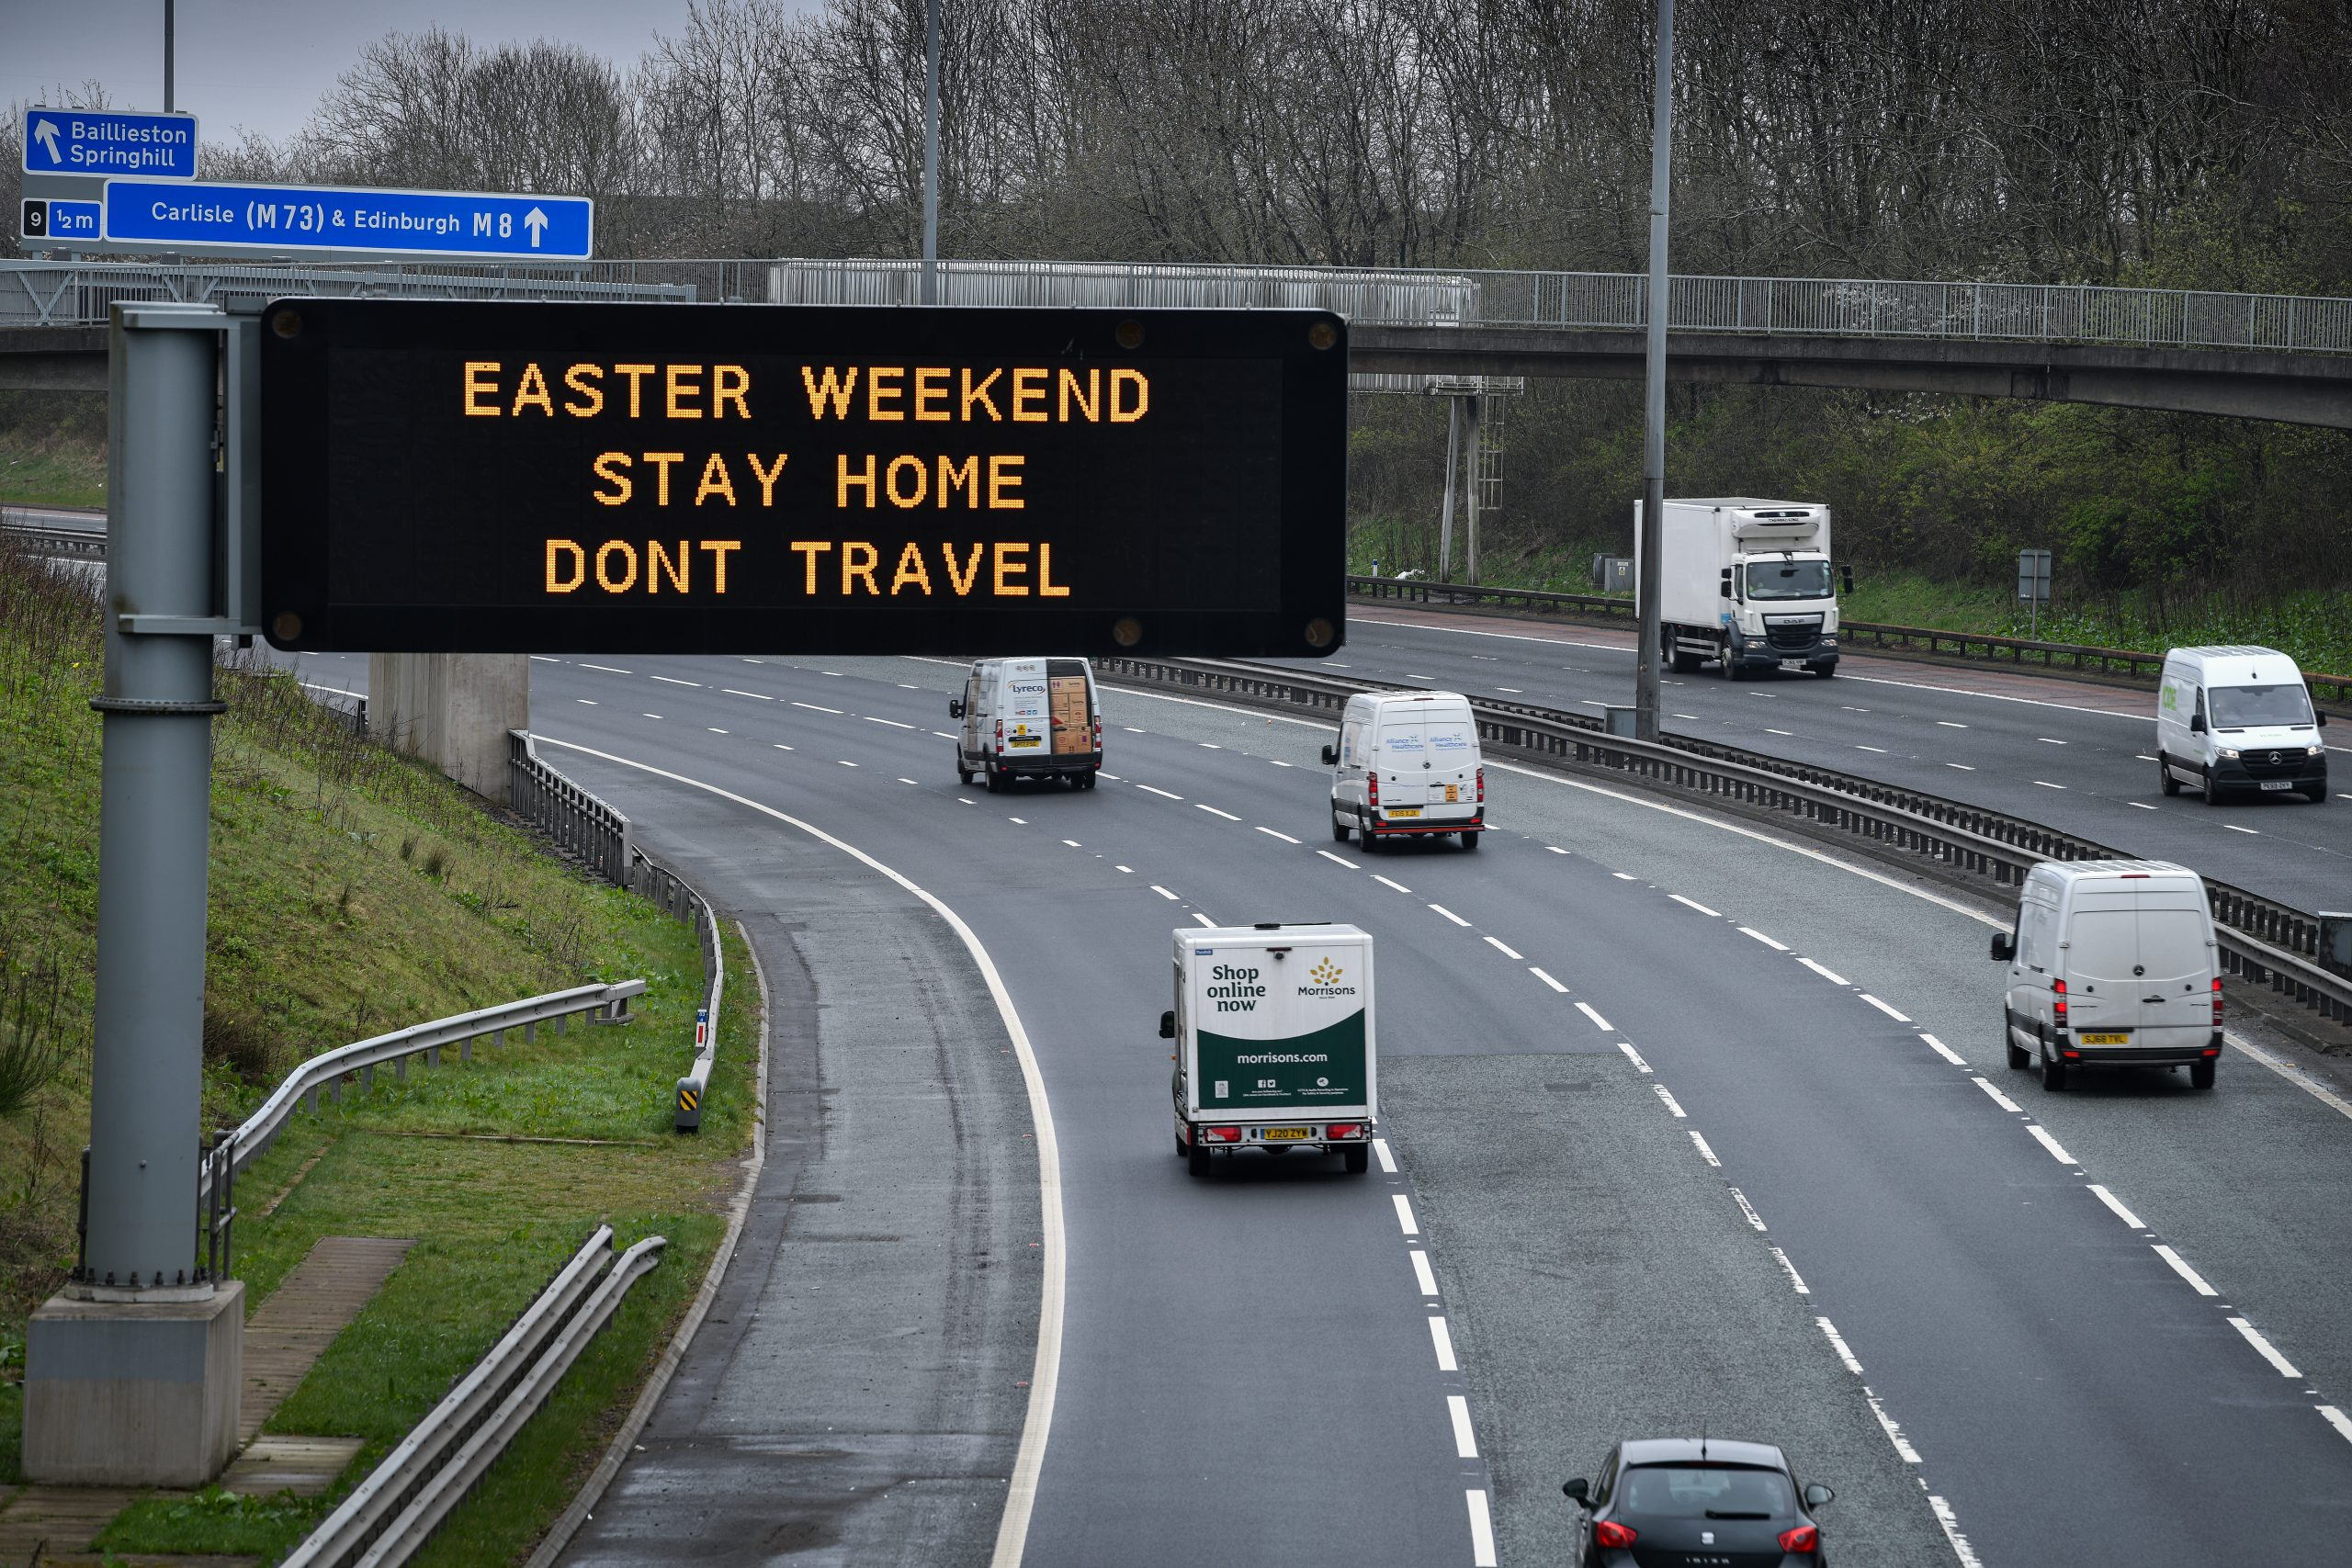 GLASGOW, SCOTLAND - APRIL 09: An overhead sign on the M8 advises people not to travel this Easter Weekend on April 9, 2020 in Glasgow, Scotland. There have been around 60,000 reported cases of the COVID-19 coronavirus in the United Kingdom and 7,000 deaths. The country is in its third week of lockdown measures aimed at slowing the spread of the virus. (Photo by Jeff J Mitchell/Getty Images)